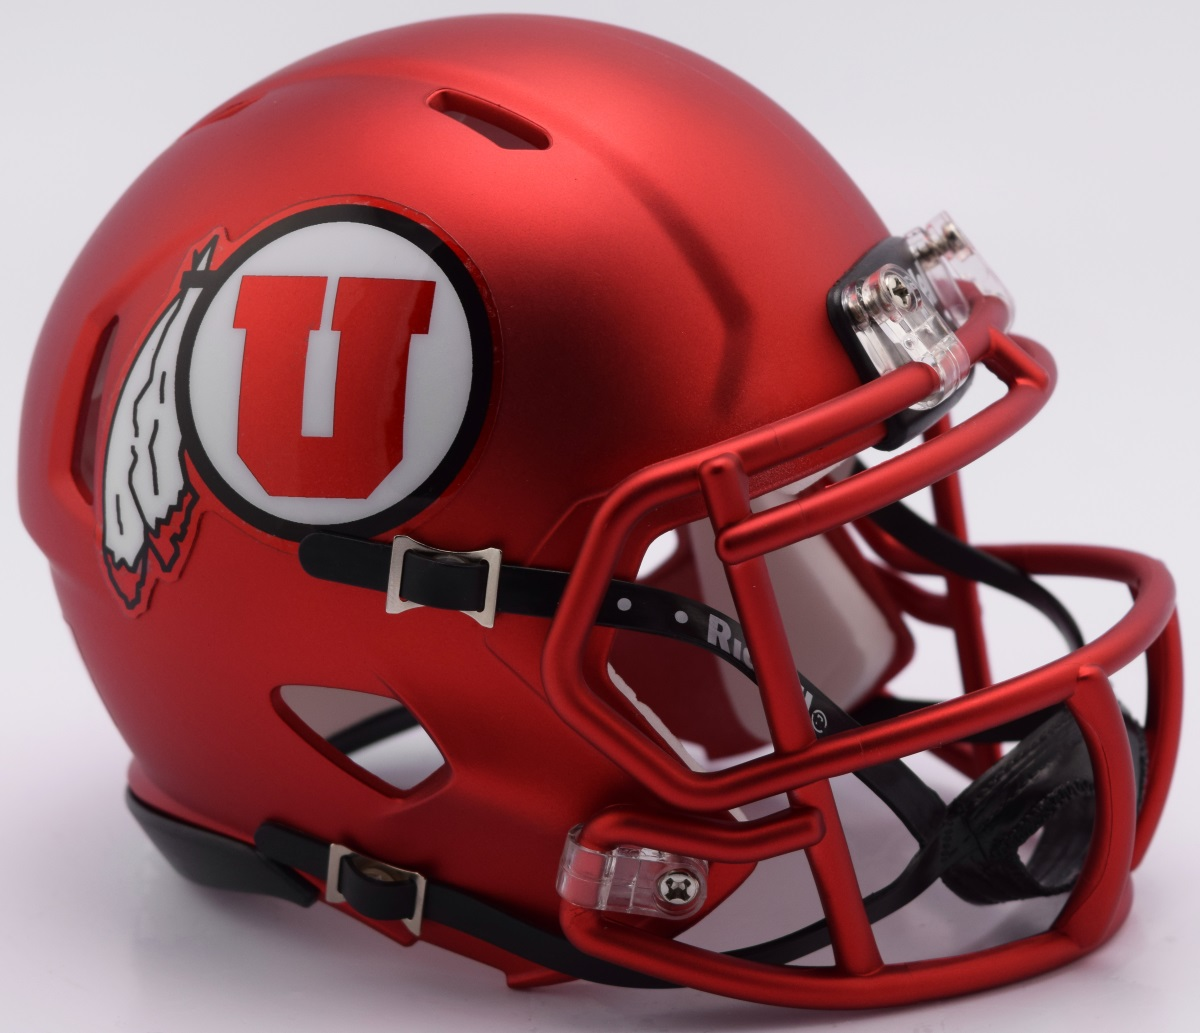 Utah Utes NCAA Mini Speed Football Helmet <B>NEW 2017 Red Pearl</B>